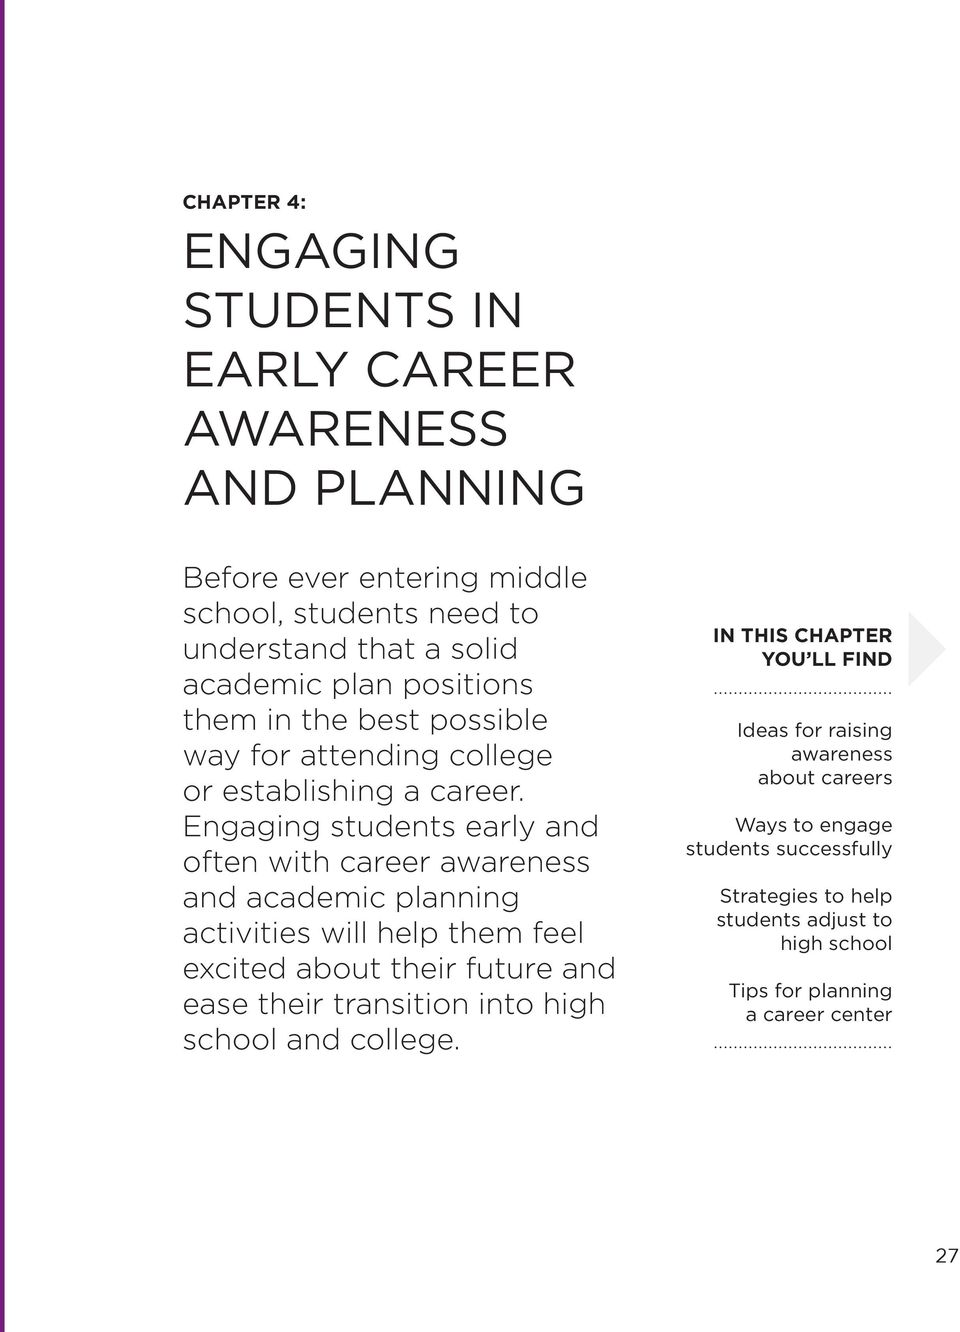 Engaging students early and often with career awareness and academic planning activities will help them feel excited about their future and ease their